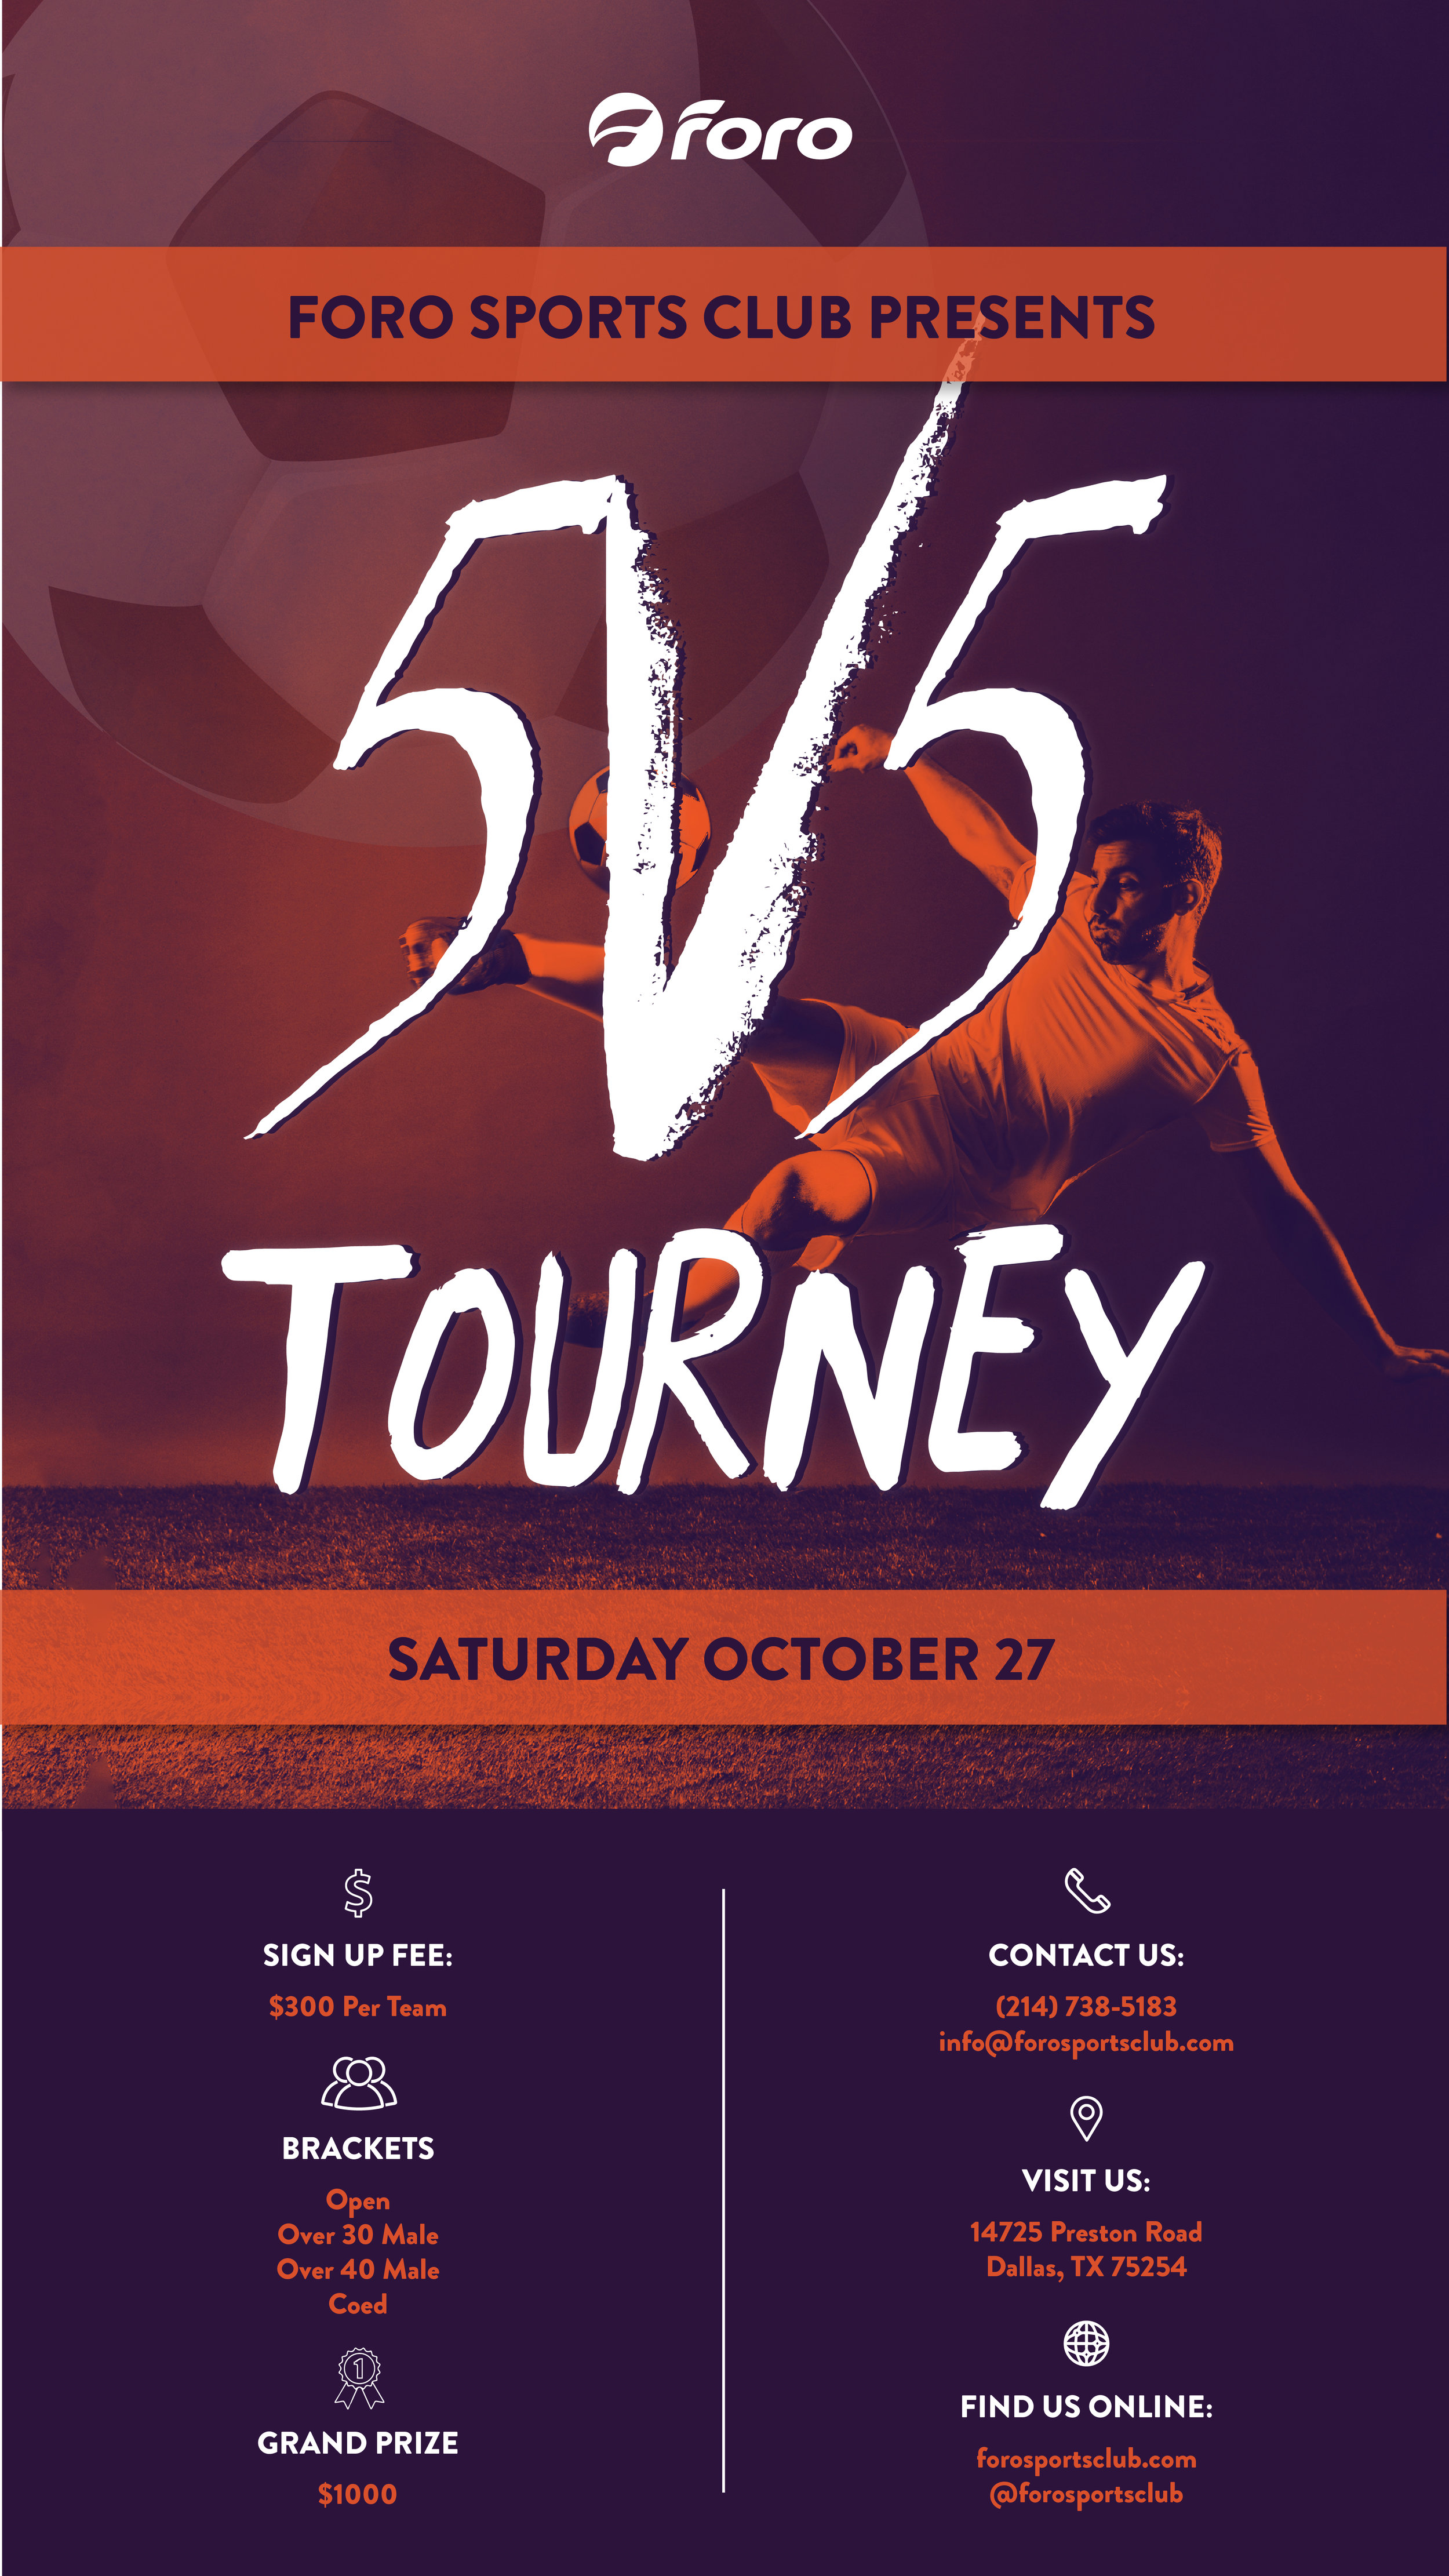 FSC 5v5 Tourney - What:CLICK BRACKET FOR REGISTRATION LINK1) Open2) Over 30 Male3) Over 40 Male4) CoedCost:Team Fee: $300Prize:1st Place: $1000, free league registration2nd Place: free league registration*T shirts for all playersFormat:3 Game GuranteeTwo 15 minute periods with a 5 minute break. In the case of a draw, no overtime; just a shoot-outContact: Bob at (214) 738-5183 or info@forosportsclub.com